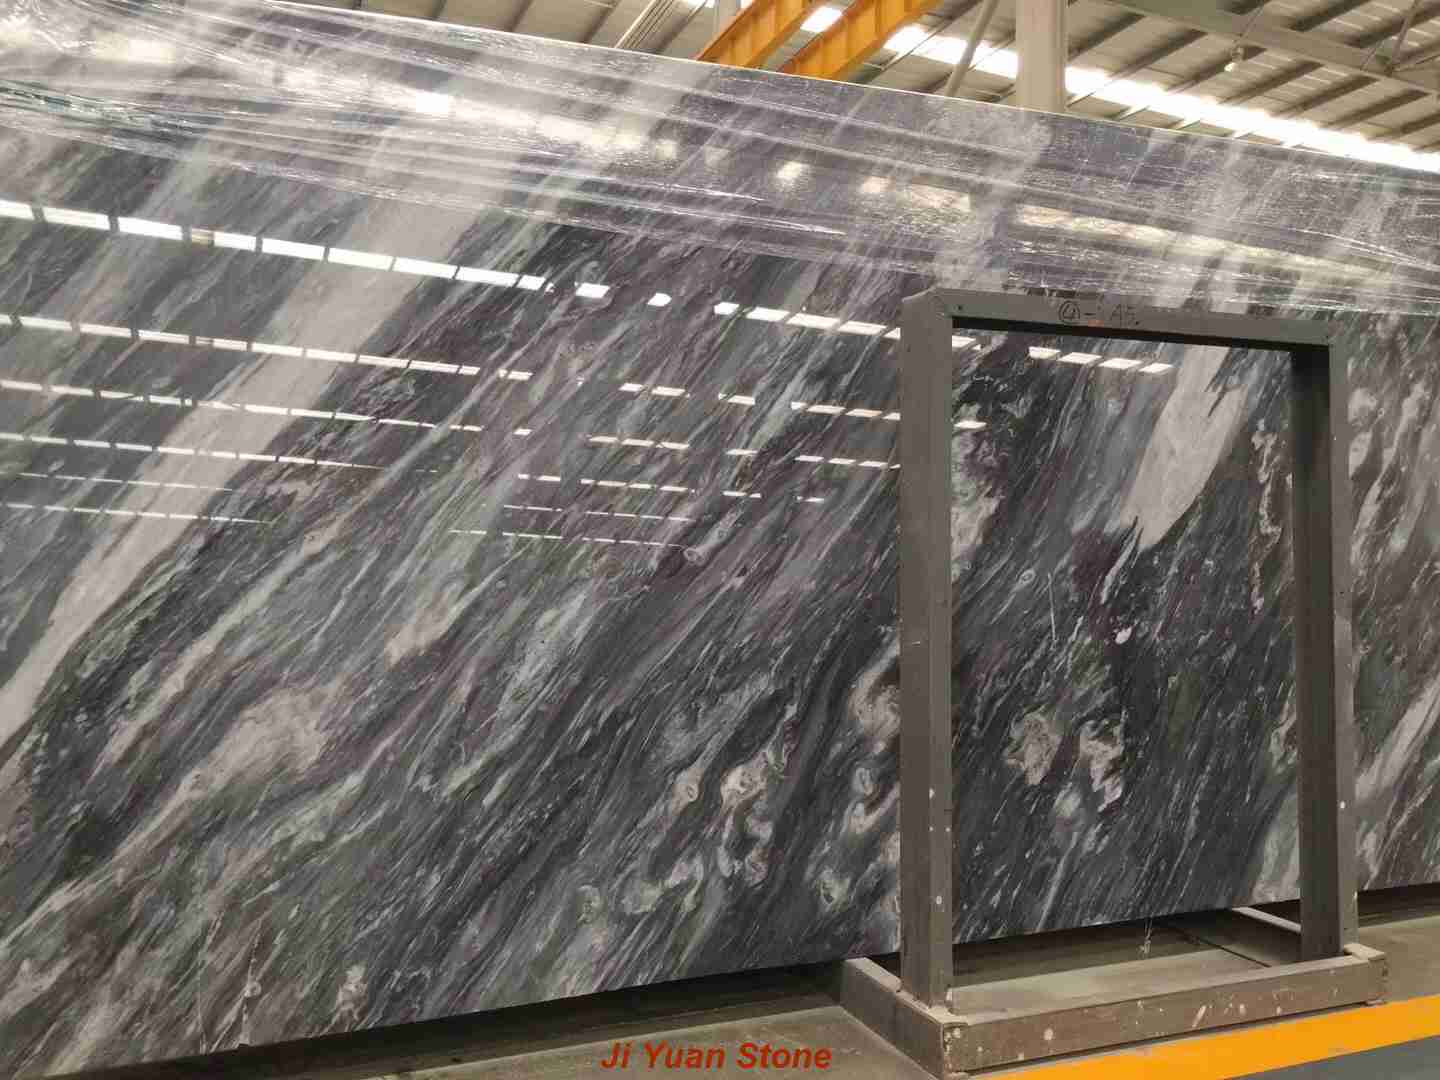 Grey marble effect wall tiles,grey and marble kitchen,dark grey marble floor tile,grey marble tile backsplash,grey marble effect floor tiles,temple grey marble